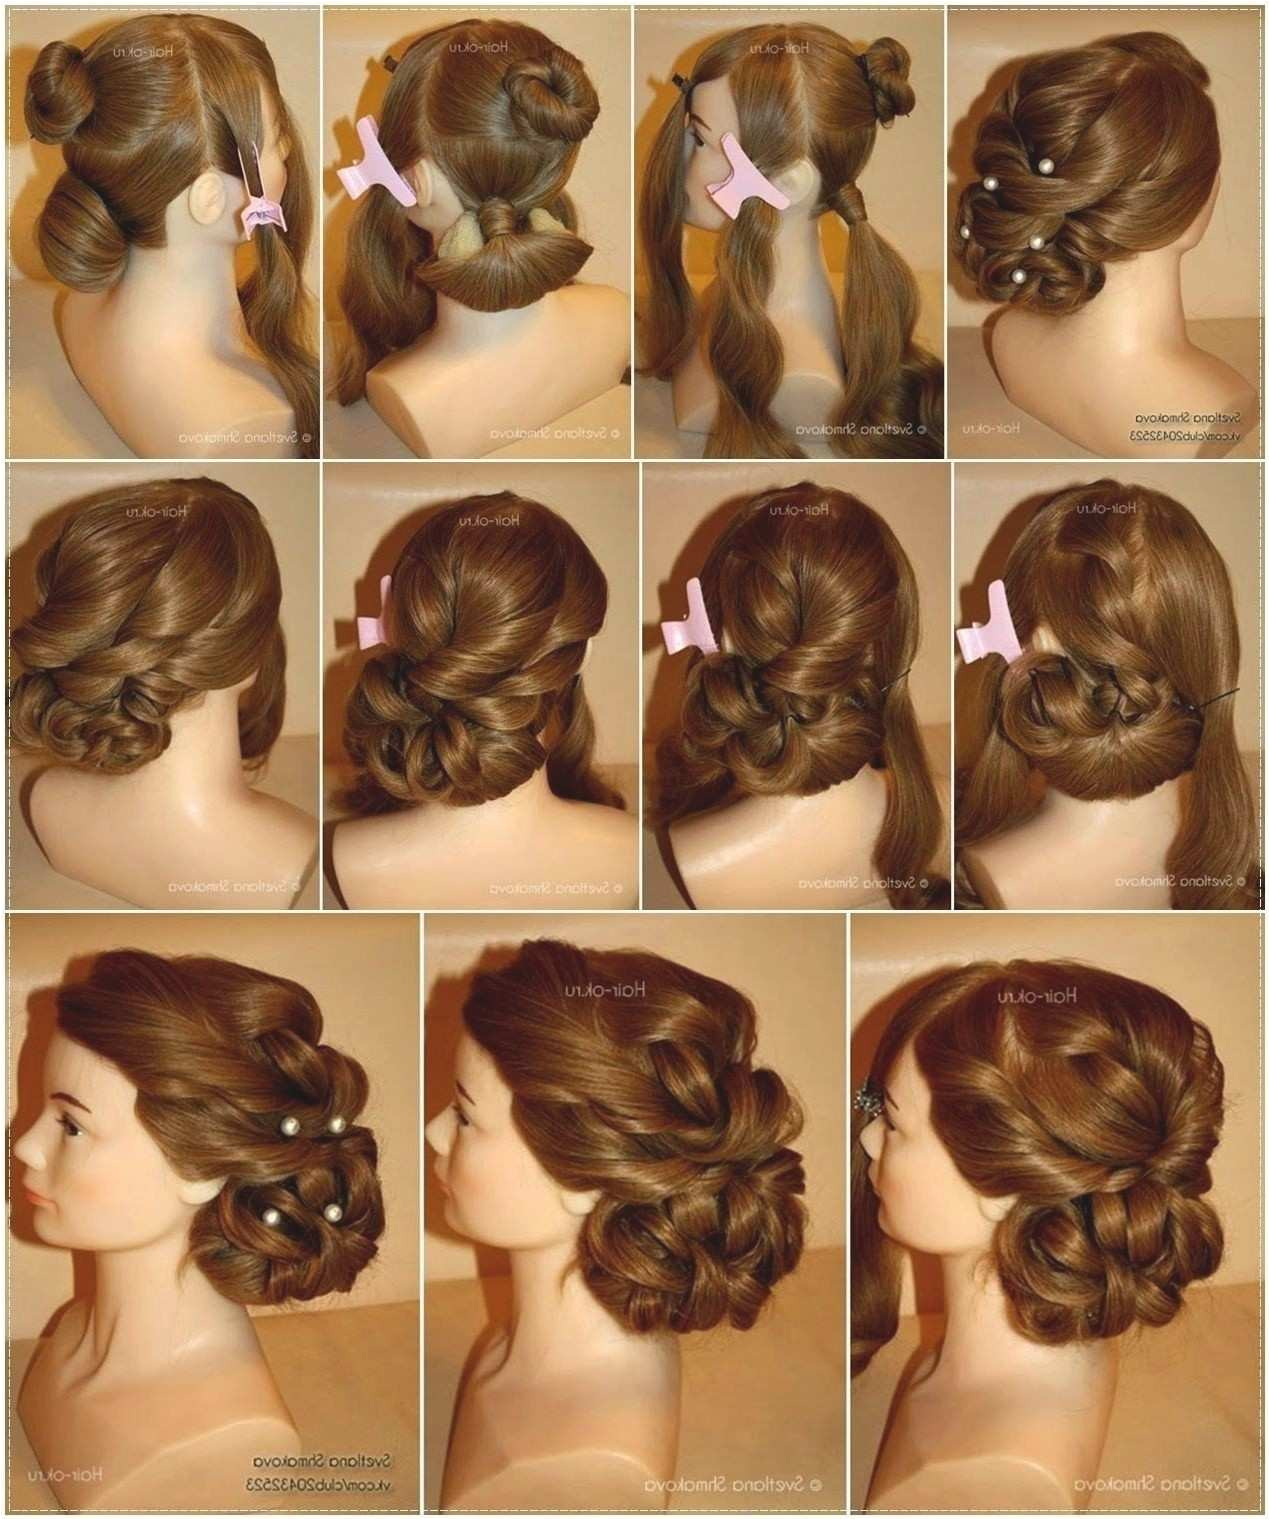 Hairstyles for Girls for Indian Weddings Beautiful Awesome Indian Wedding Hairstyles for Long Hair Videos –